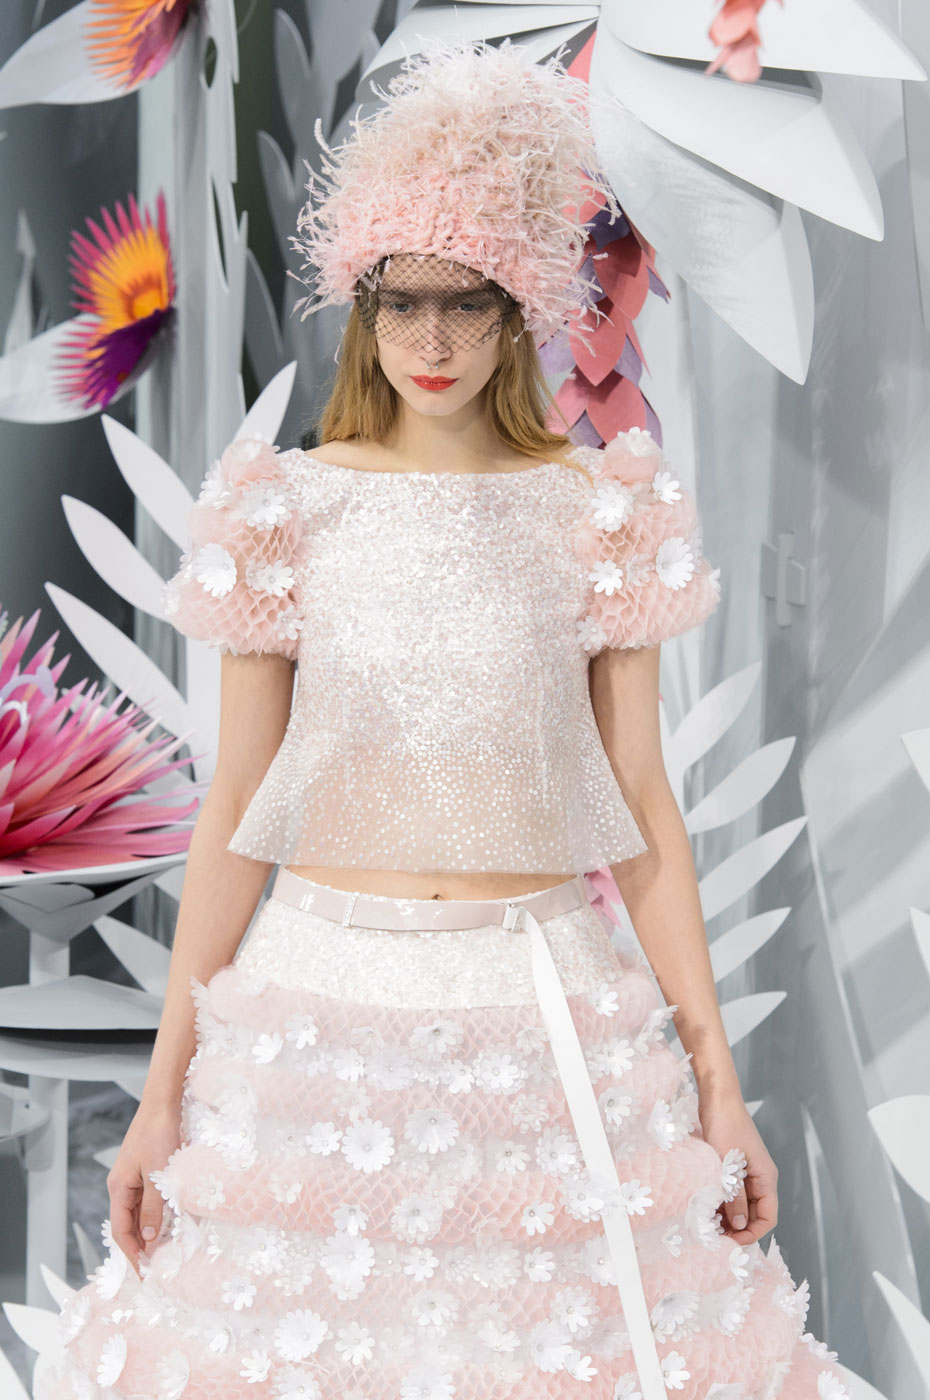 Chanel-fashion-runway-show-haute-couture-paris-spring-summer-2015-the-impression-152